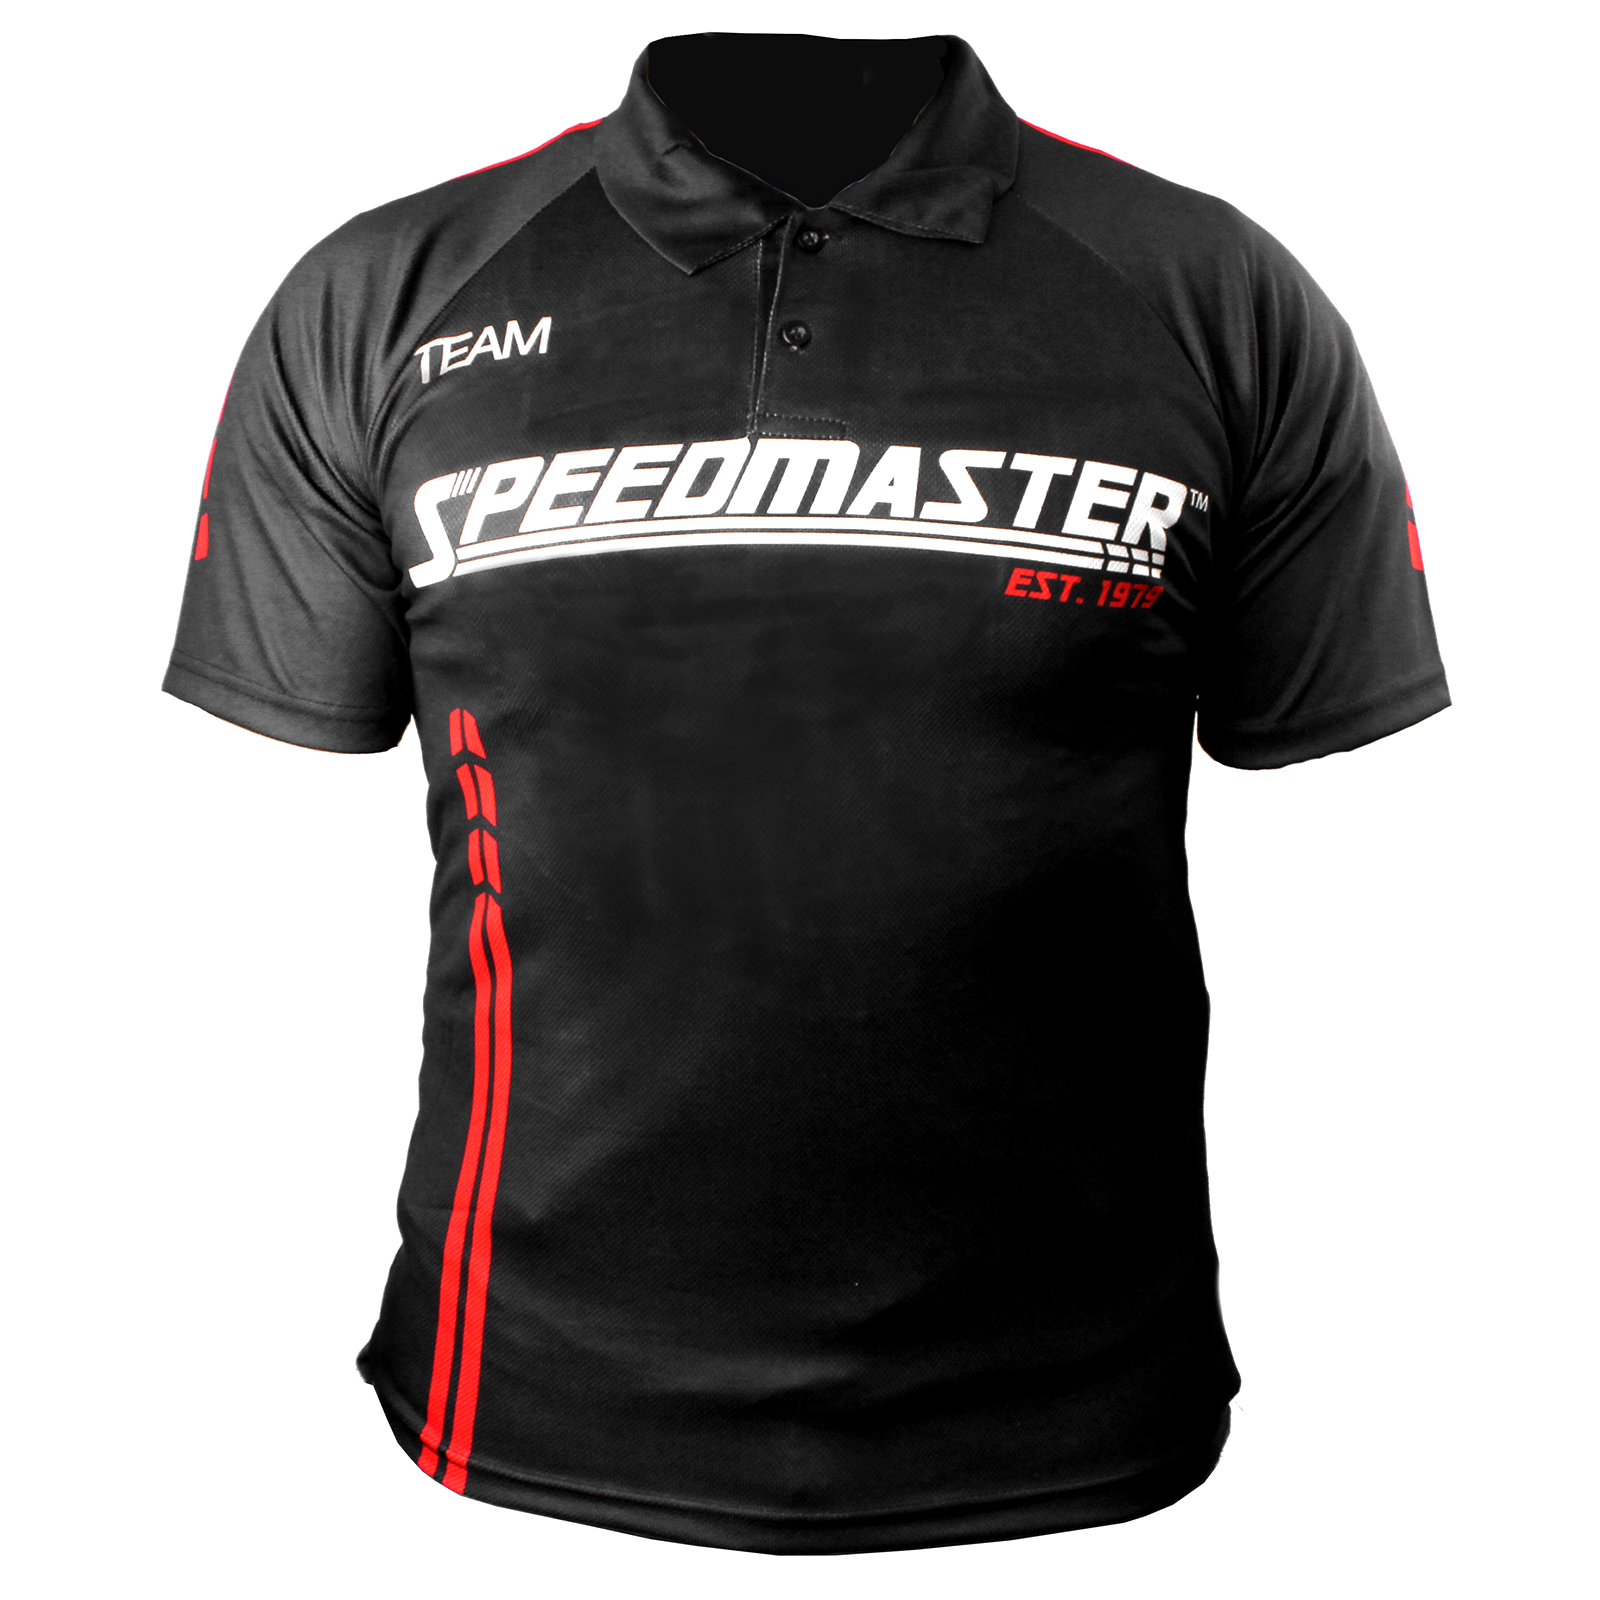 Speedmaster Team Jersey / Polo Shirt - Large L